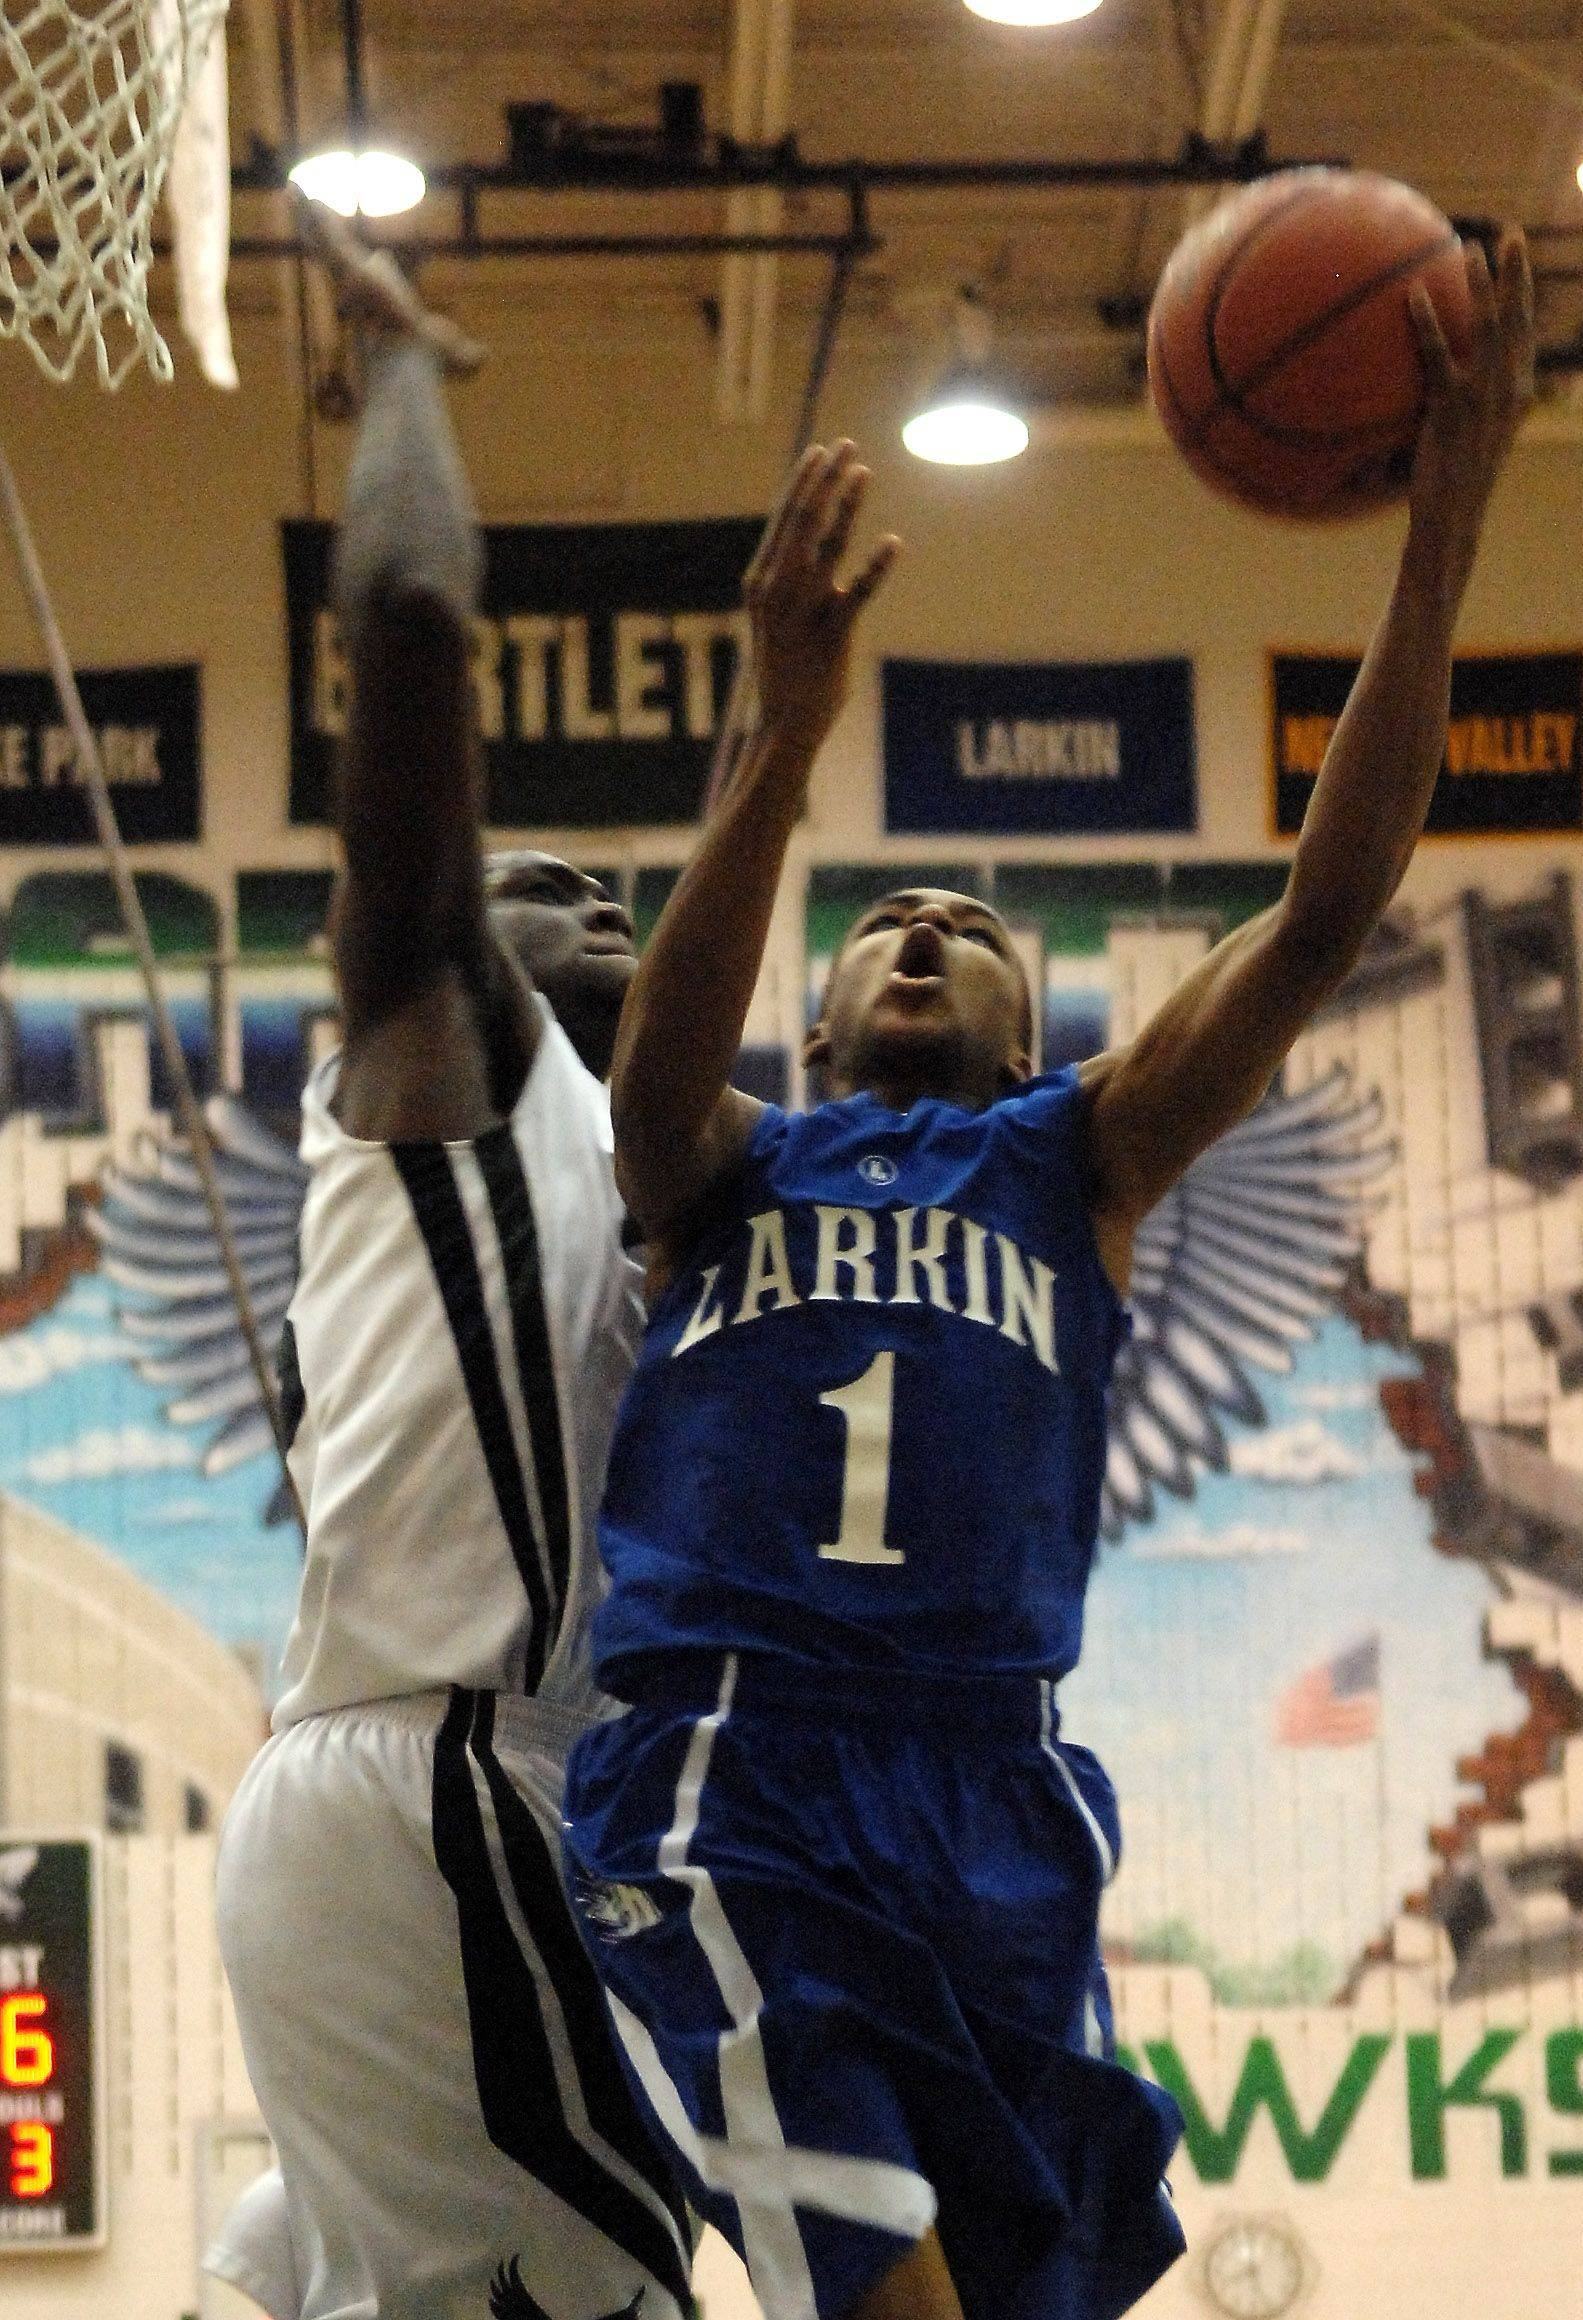 Larkin's Quantice Hunter drives for a layup against Bartlett's Lorenzo Mitchell during Friday's game at Bartlett. Hunter has helped the Royals to a 5-0 start to the season.